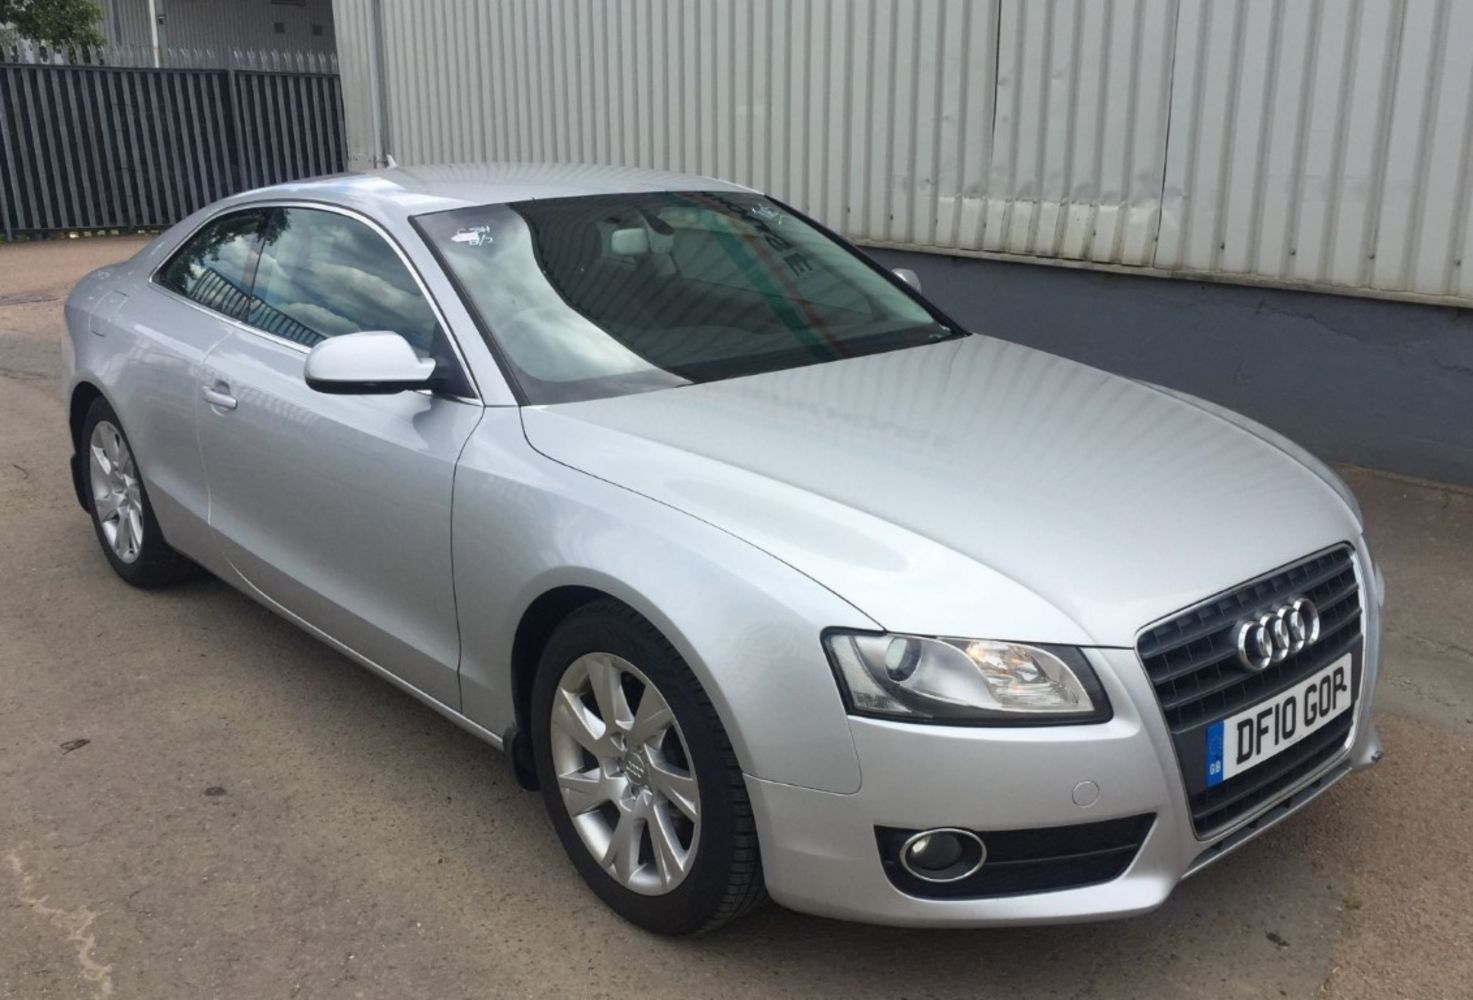 Monday 25th October - Car and Van Auction - Also Featuring Car Parts And Tools